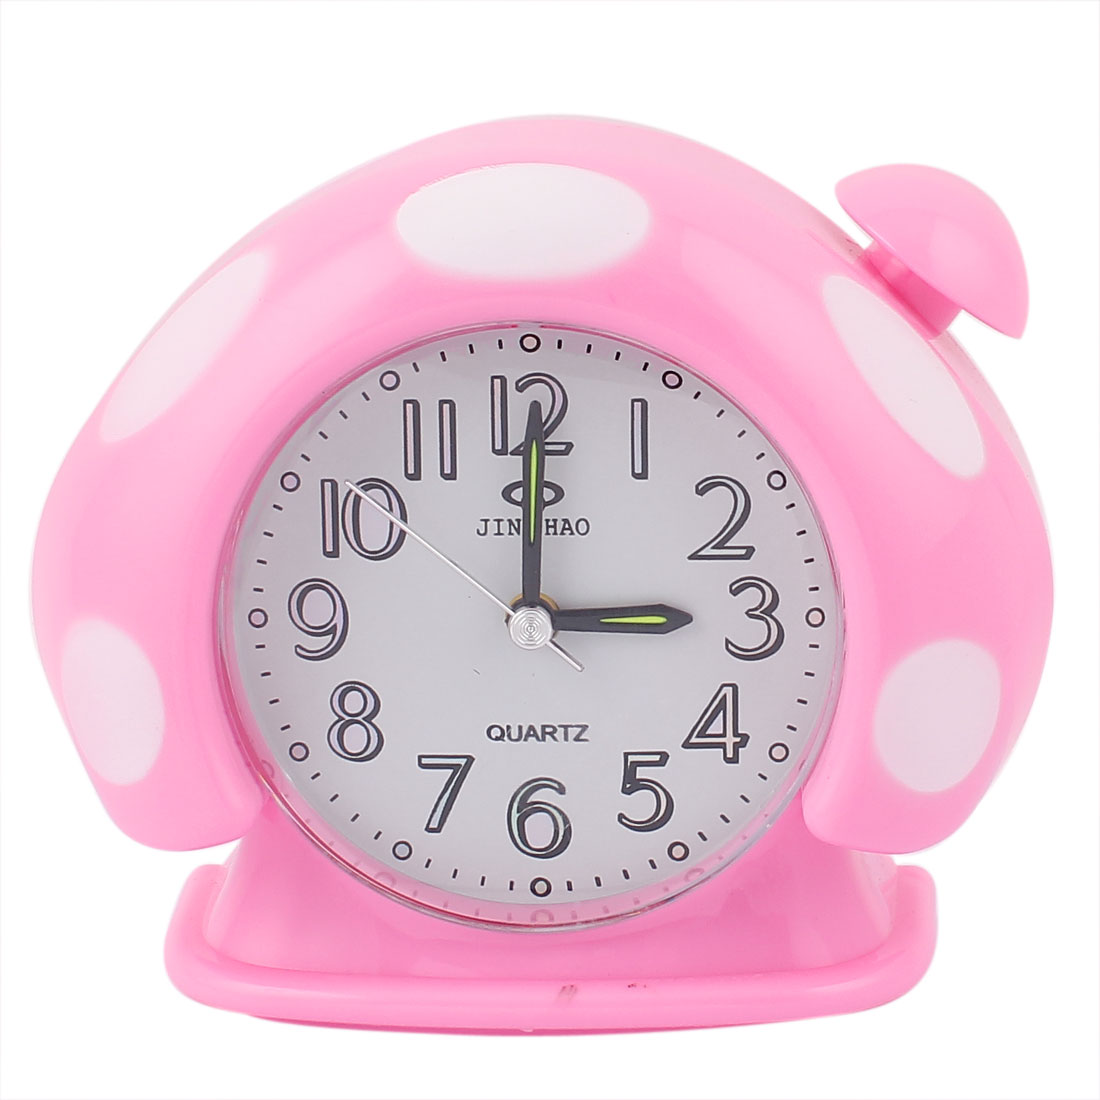 Plastic Mushroom Shaped Home Office Digital LCD Desktop Alarm Clock Pink